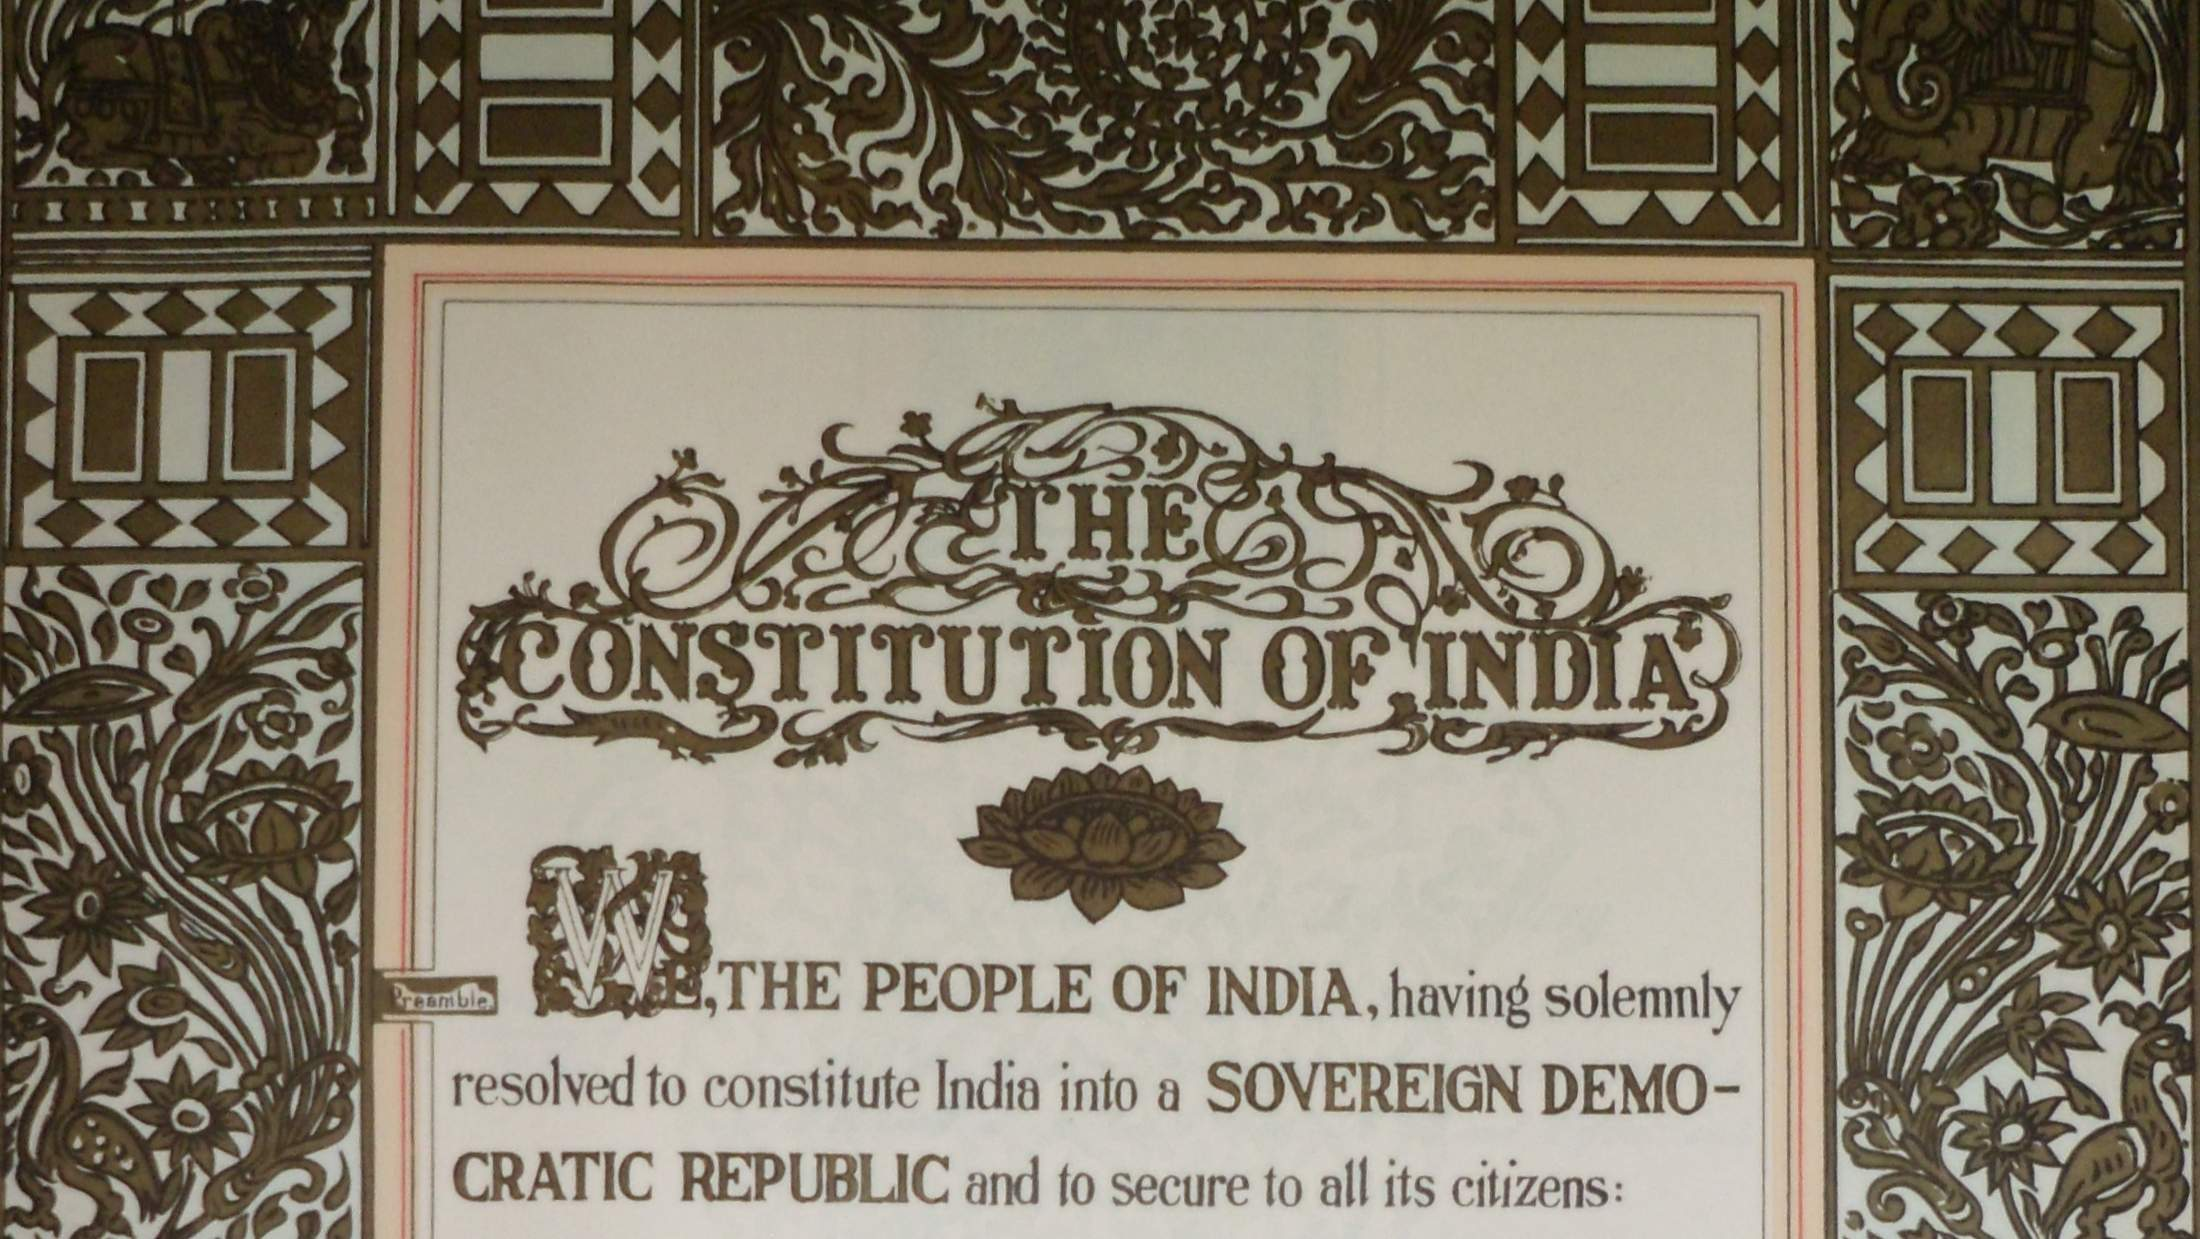 preamble_constitution_of_india_by_omkr01-d4l9pj1